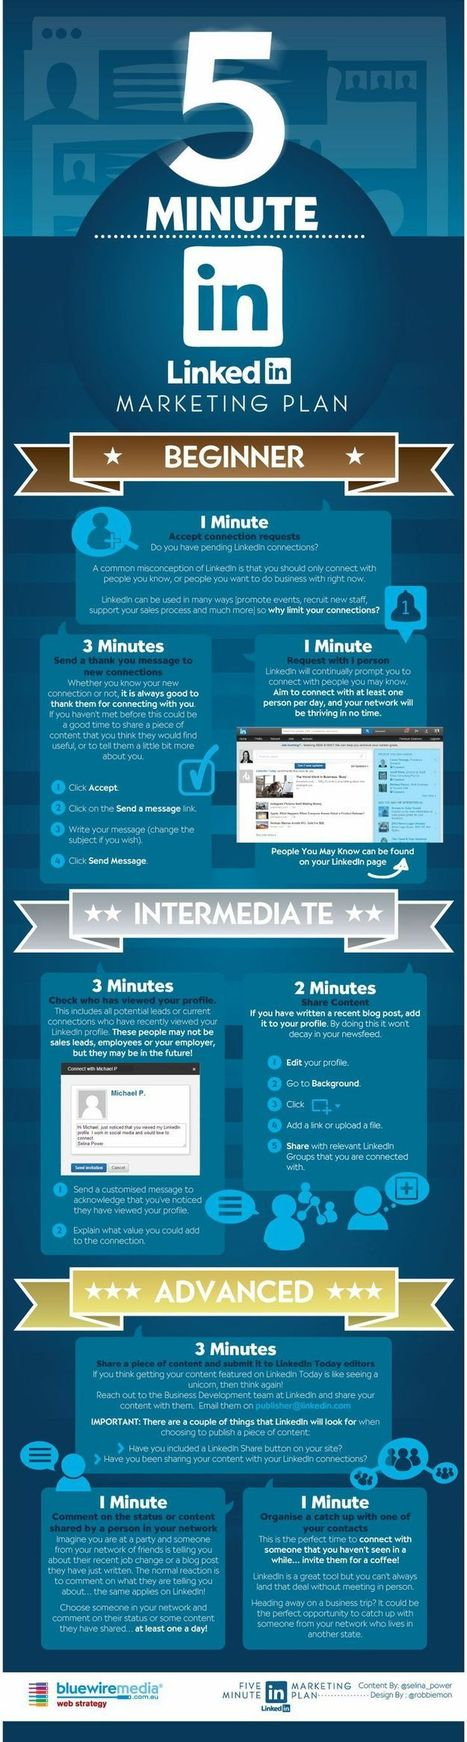 5 Minute in Linkedin Marketing Plan [Infographic] - Blue Wire Media | cool tech tools | Scoop.it